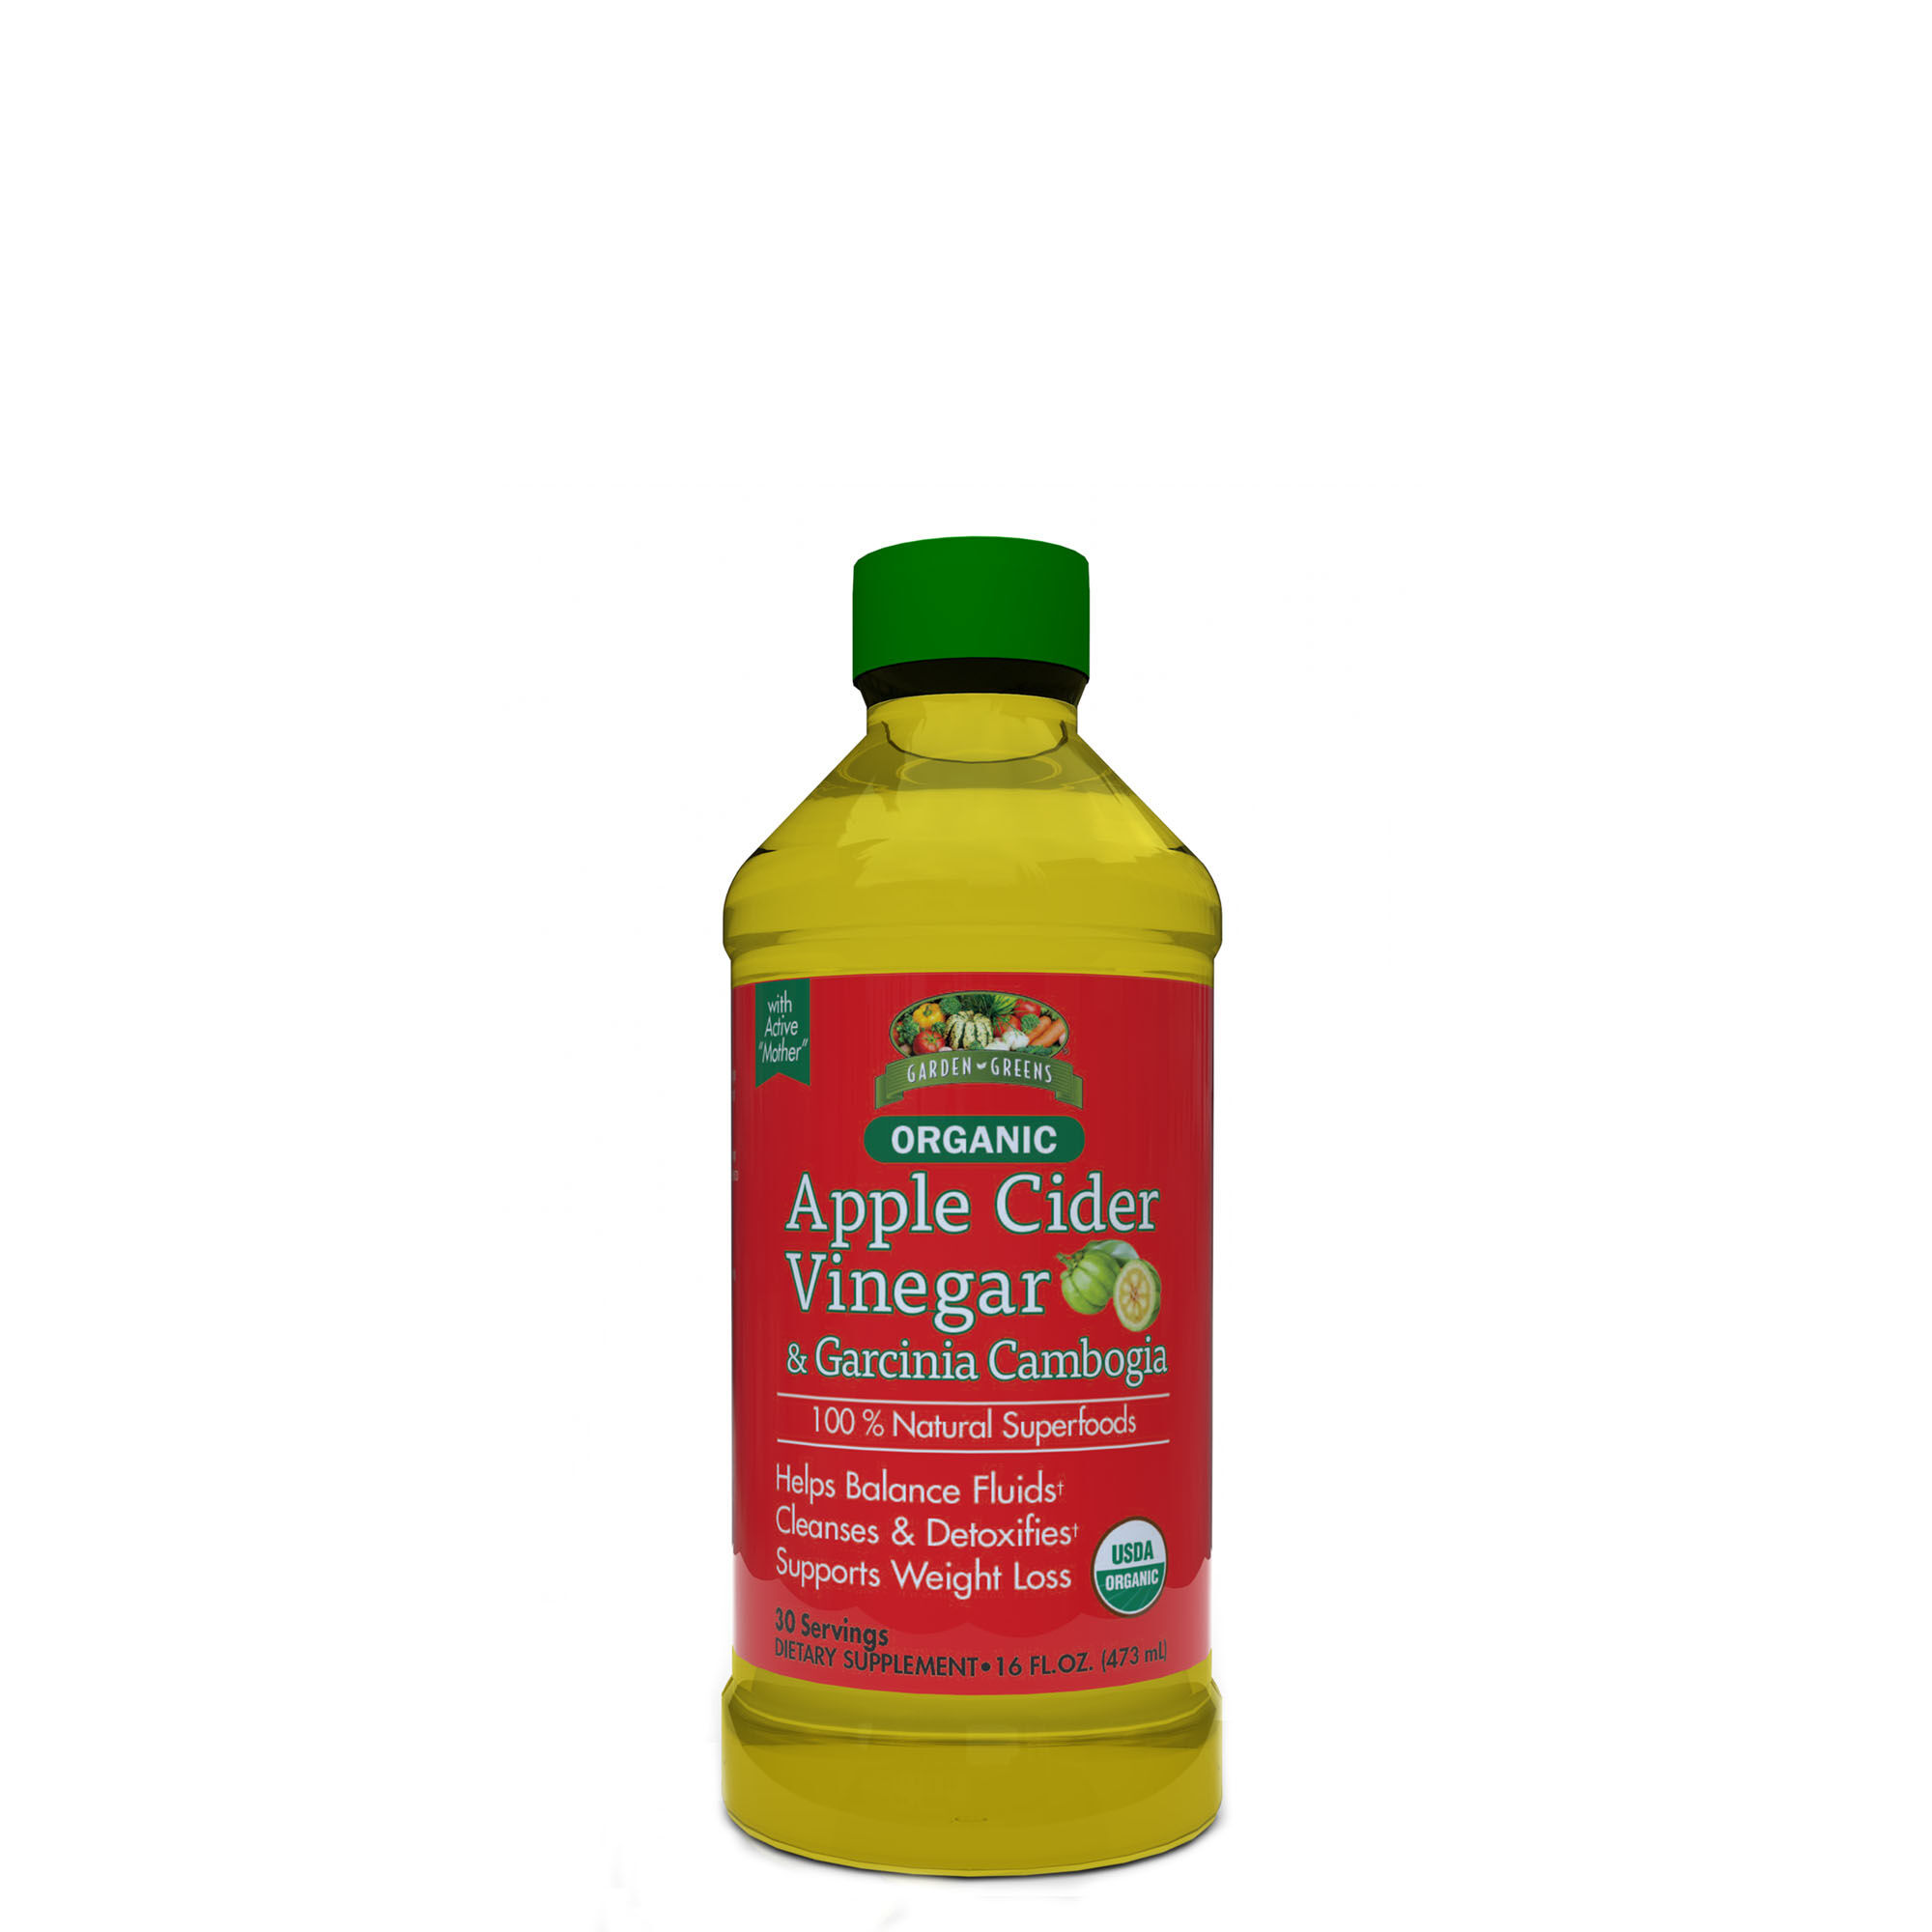 how to use cambogia and apple cider vinegar